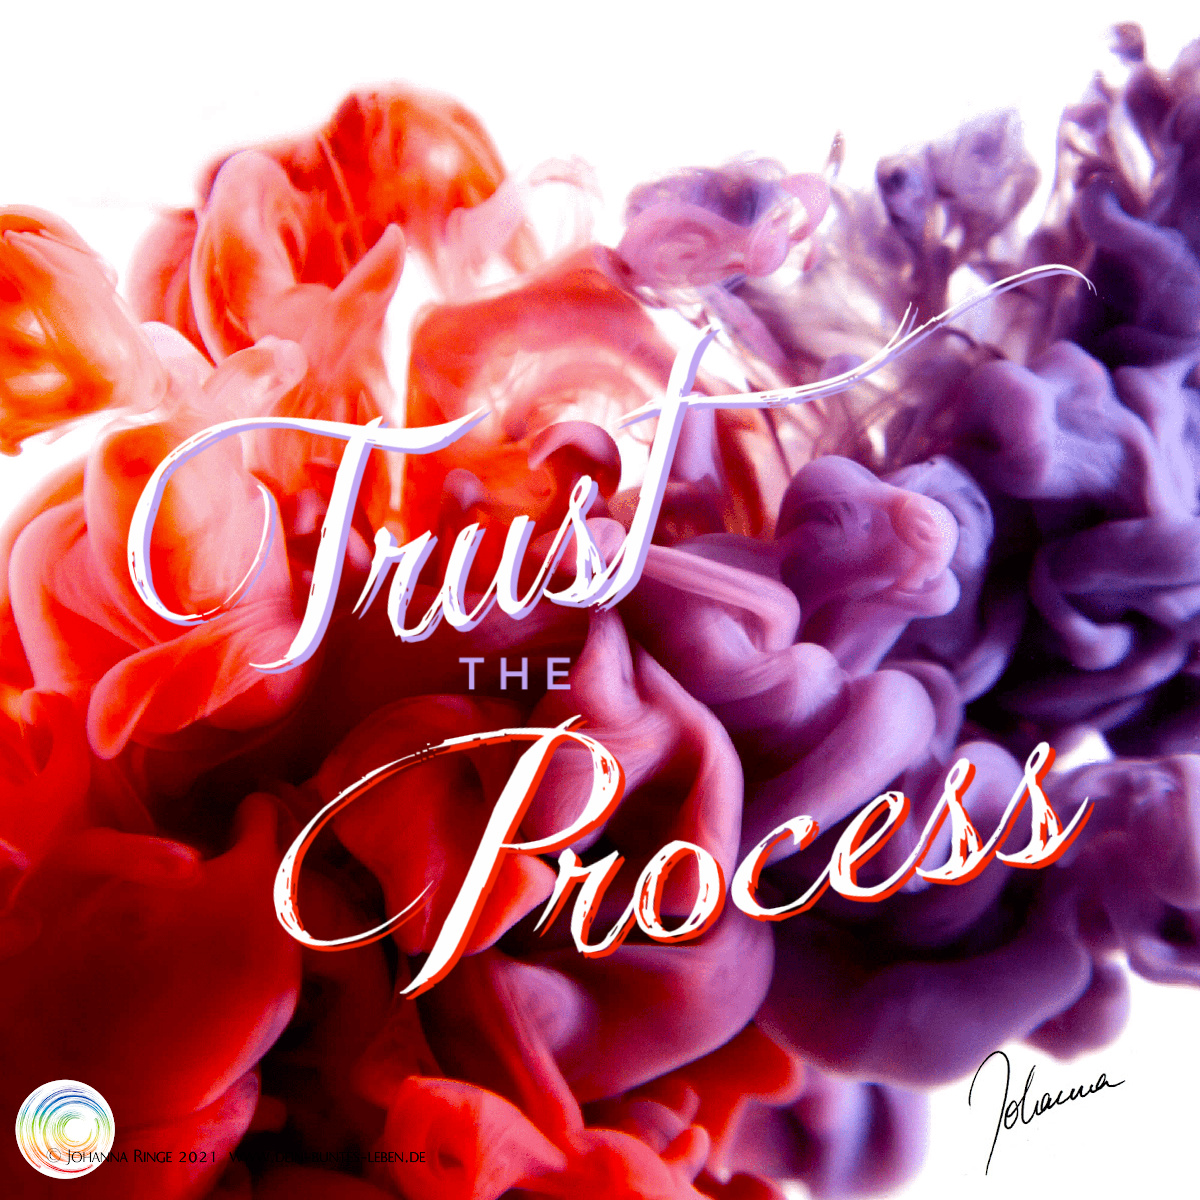 Trust the process (text on photograph of swirling ink in red and purple) ©Johanna Ringe 2021 www.johannaringe.com